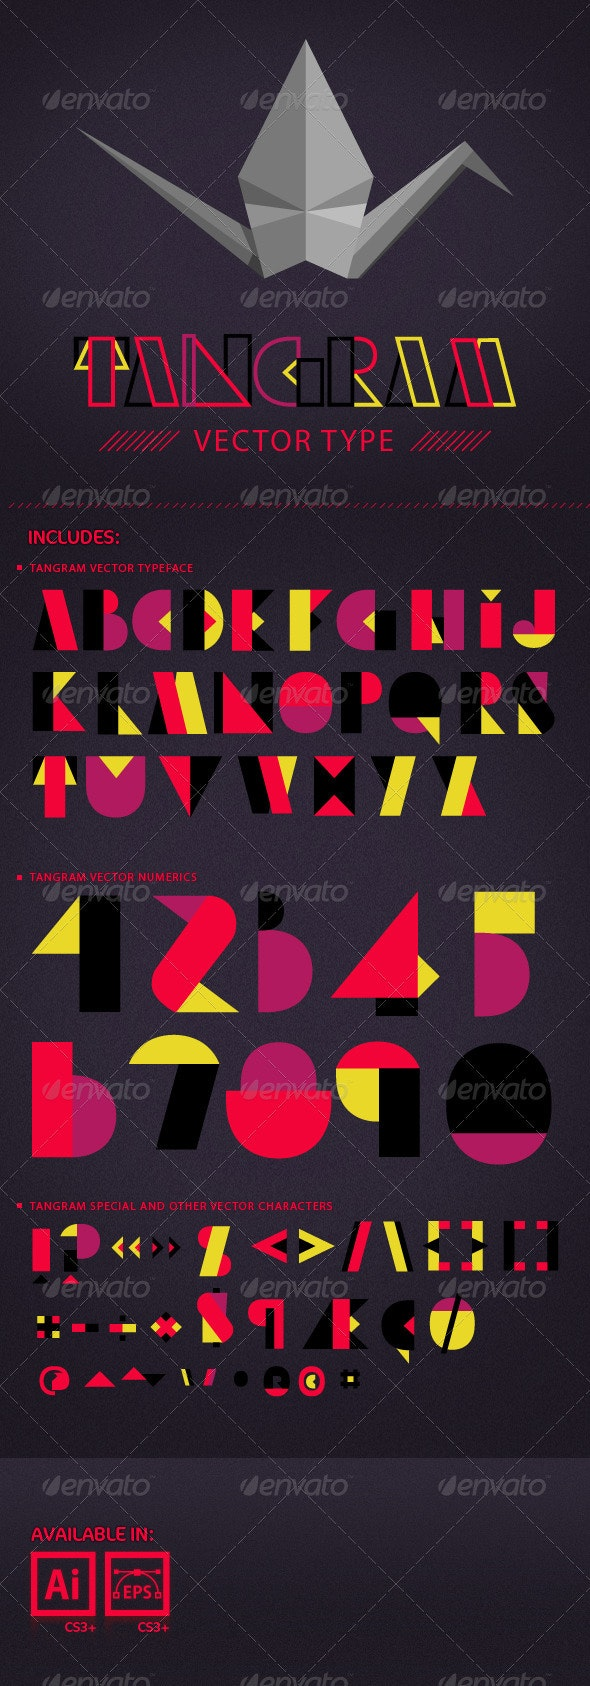 Tangram Vector Typeface. - Objects Vectors